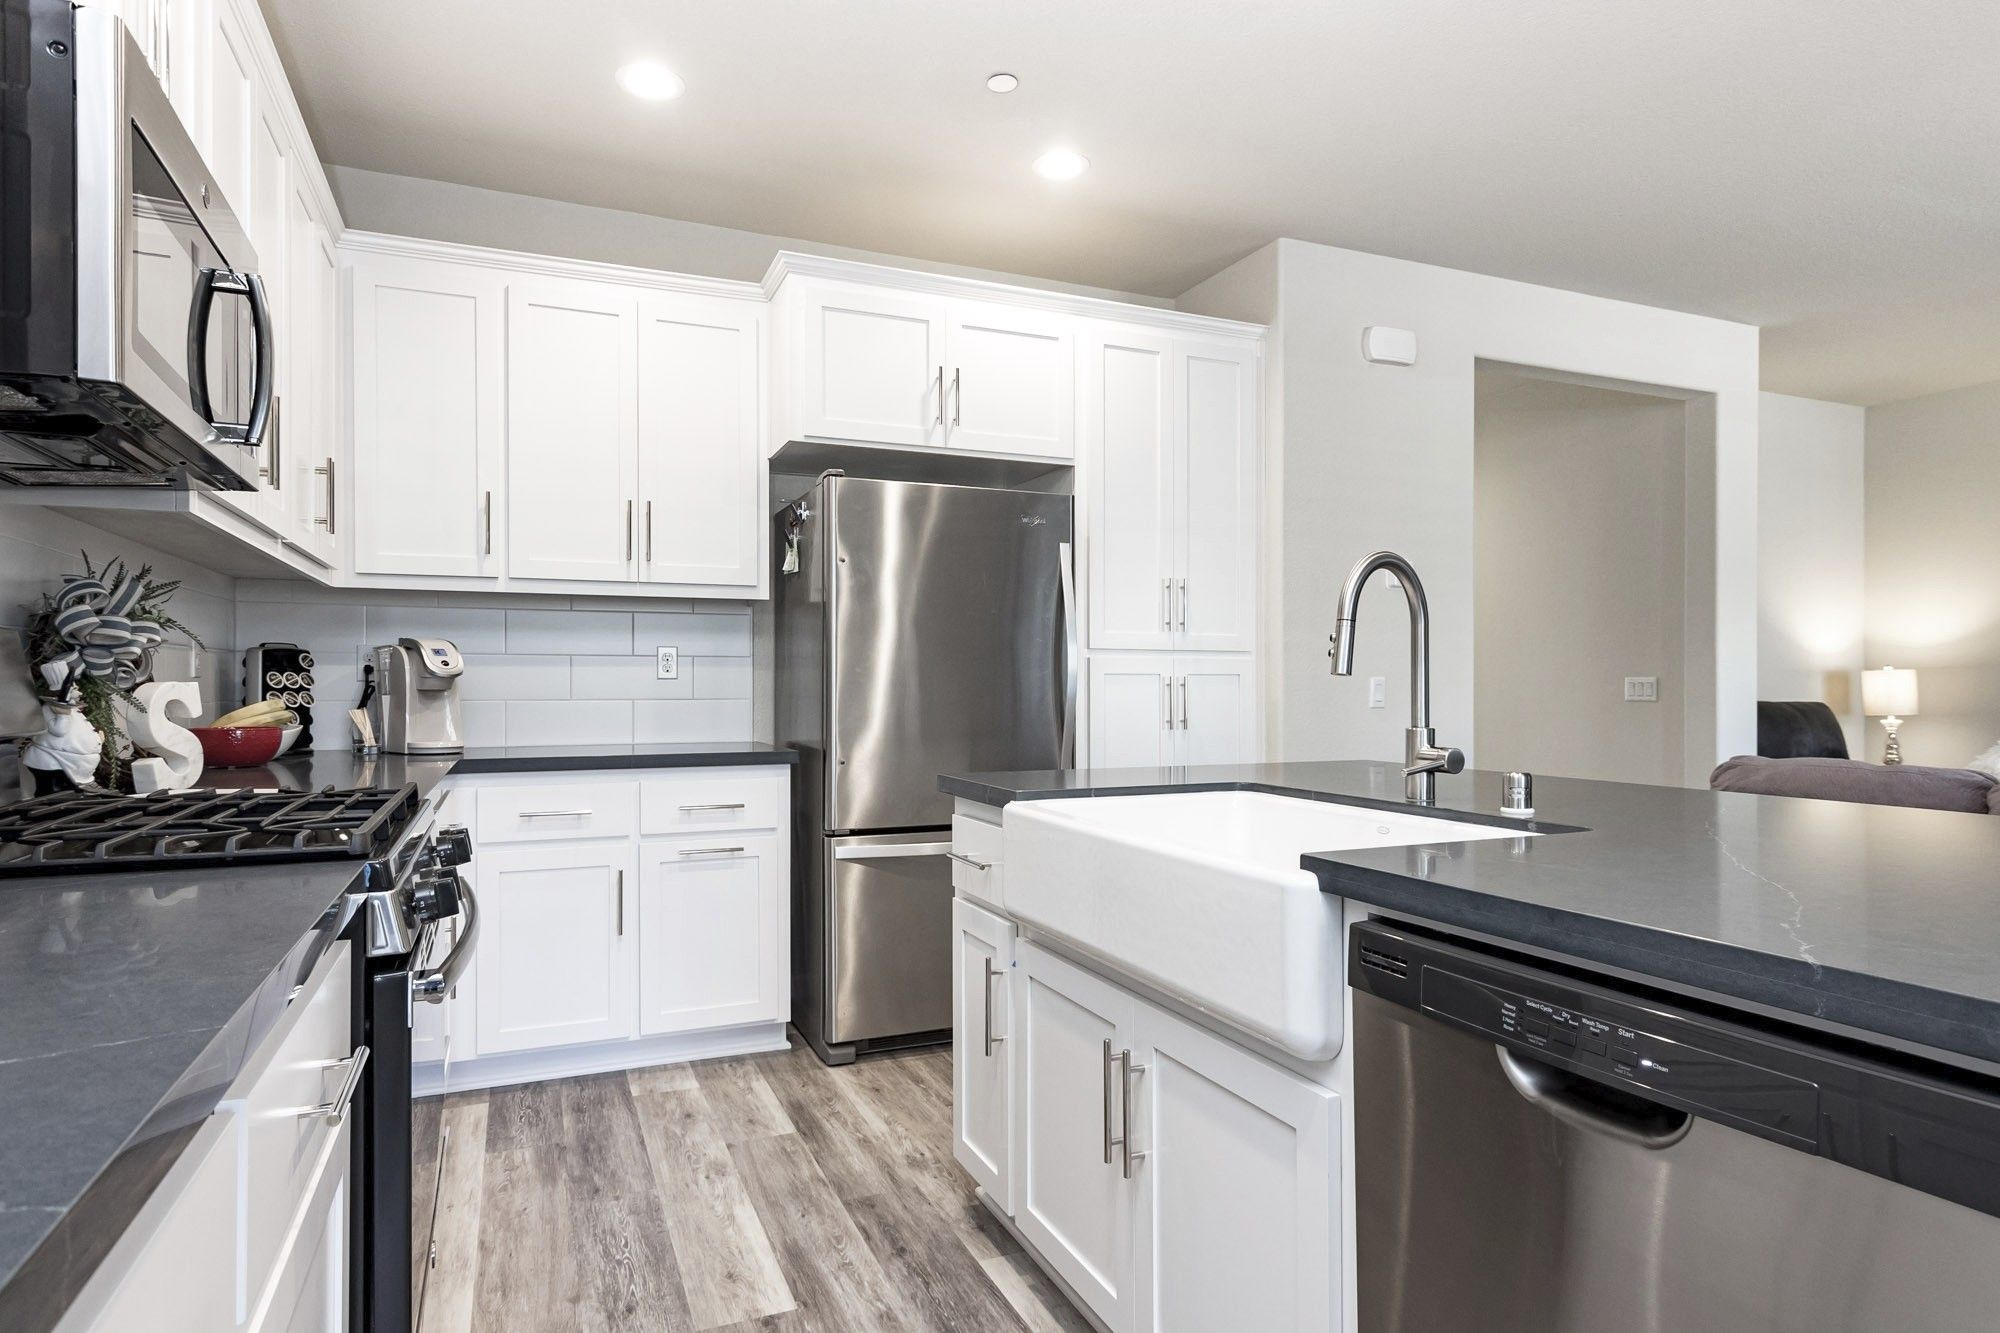 Kitchen featured in The Ambiance By Florsheim Homes in Modesto, CA